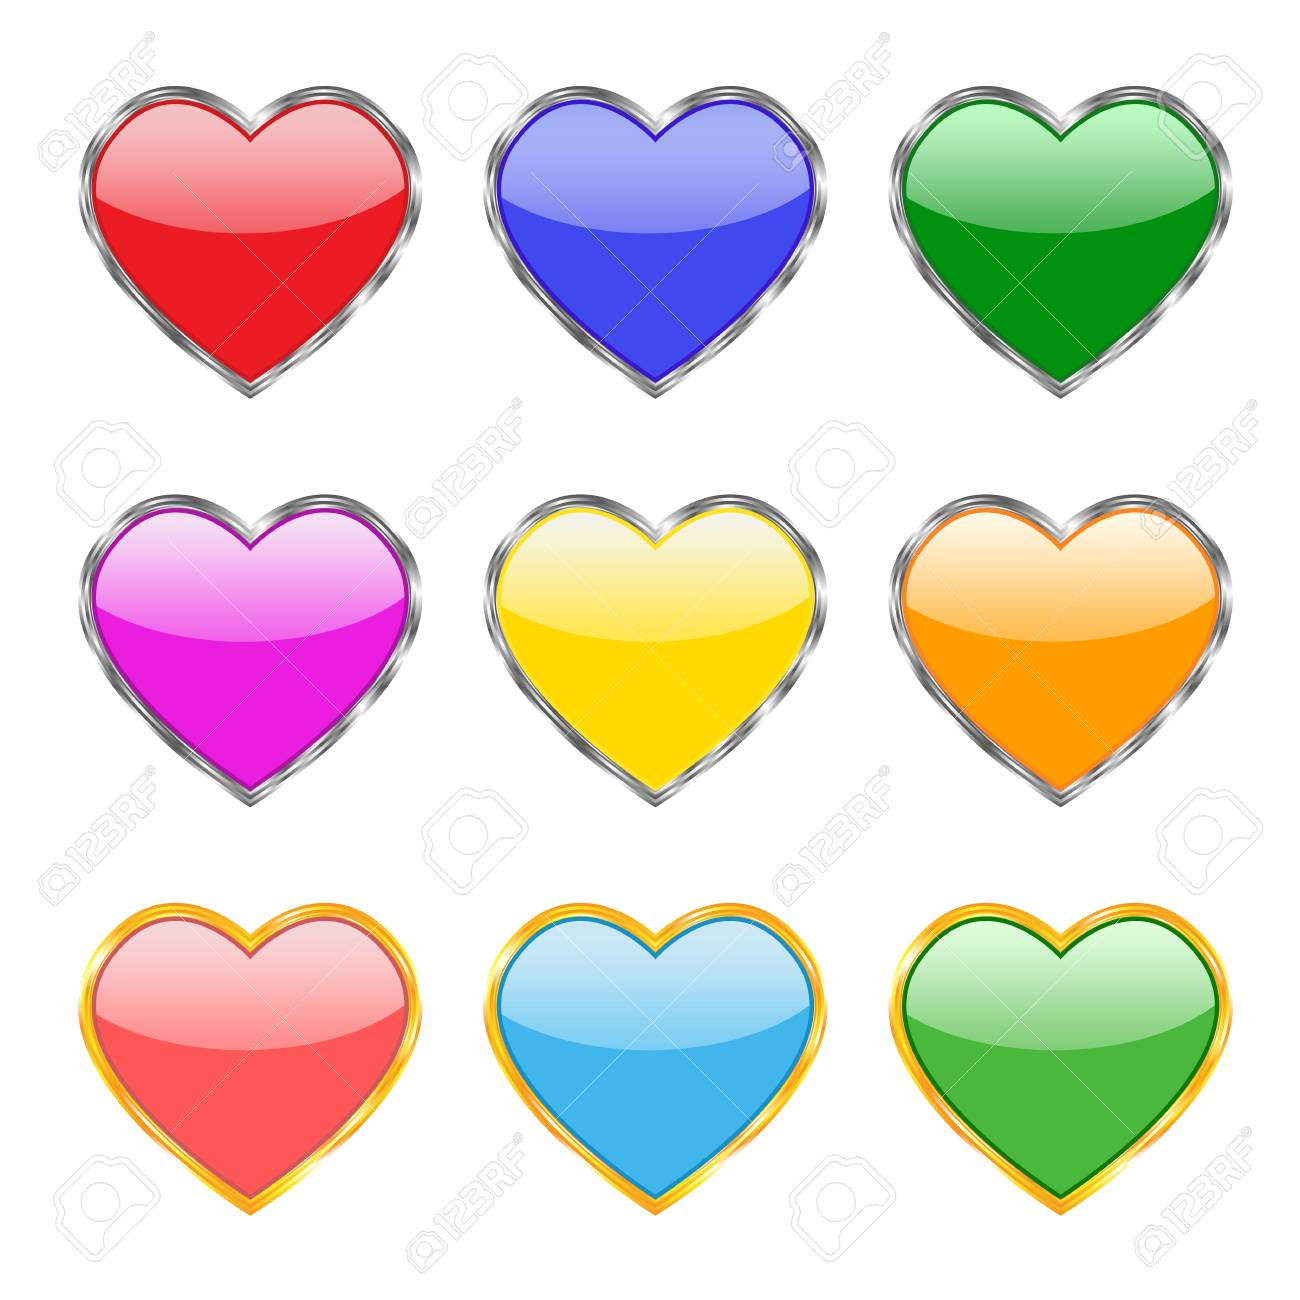 A set of nine buttons in the form of hearts in different colors